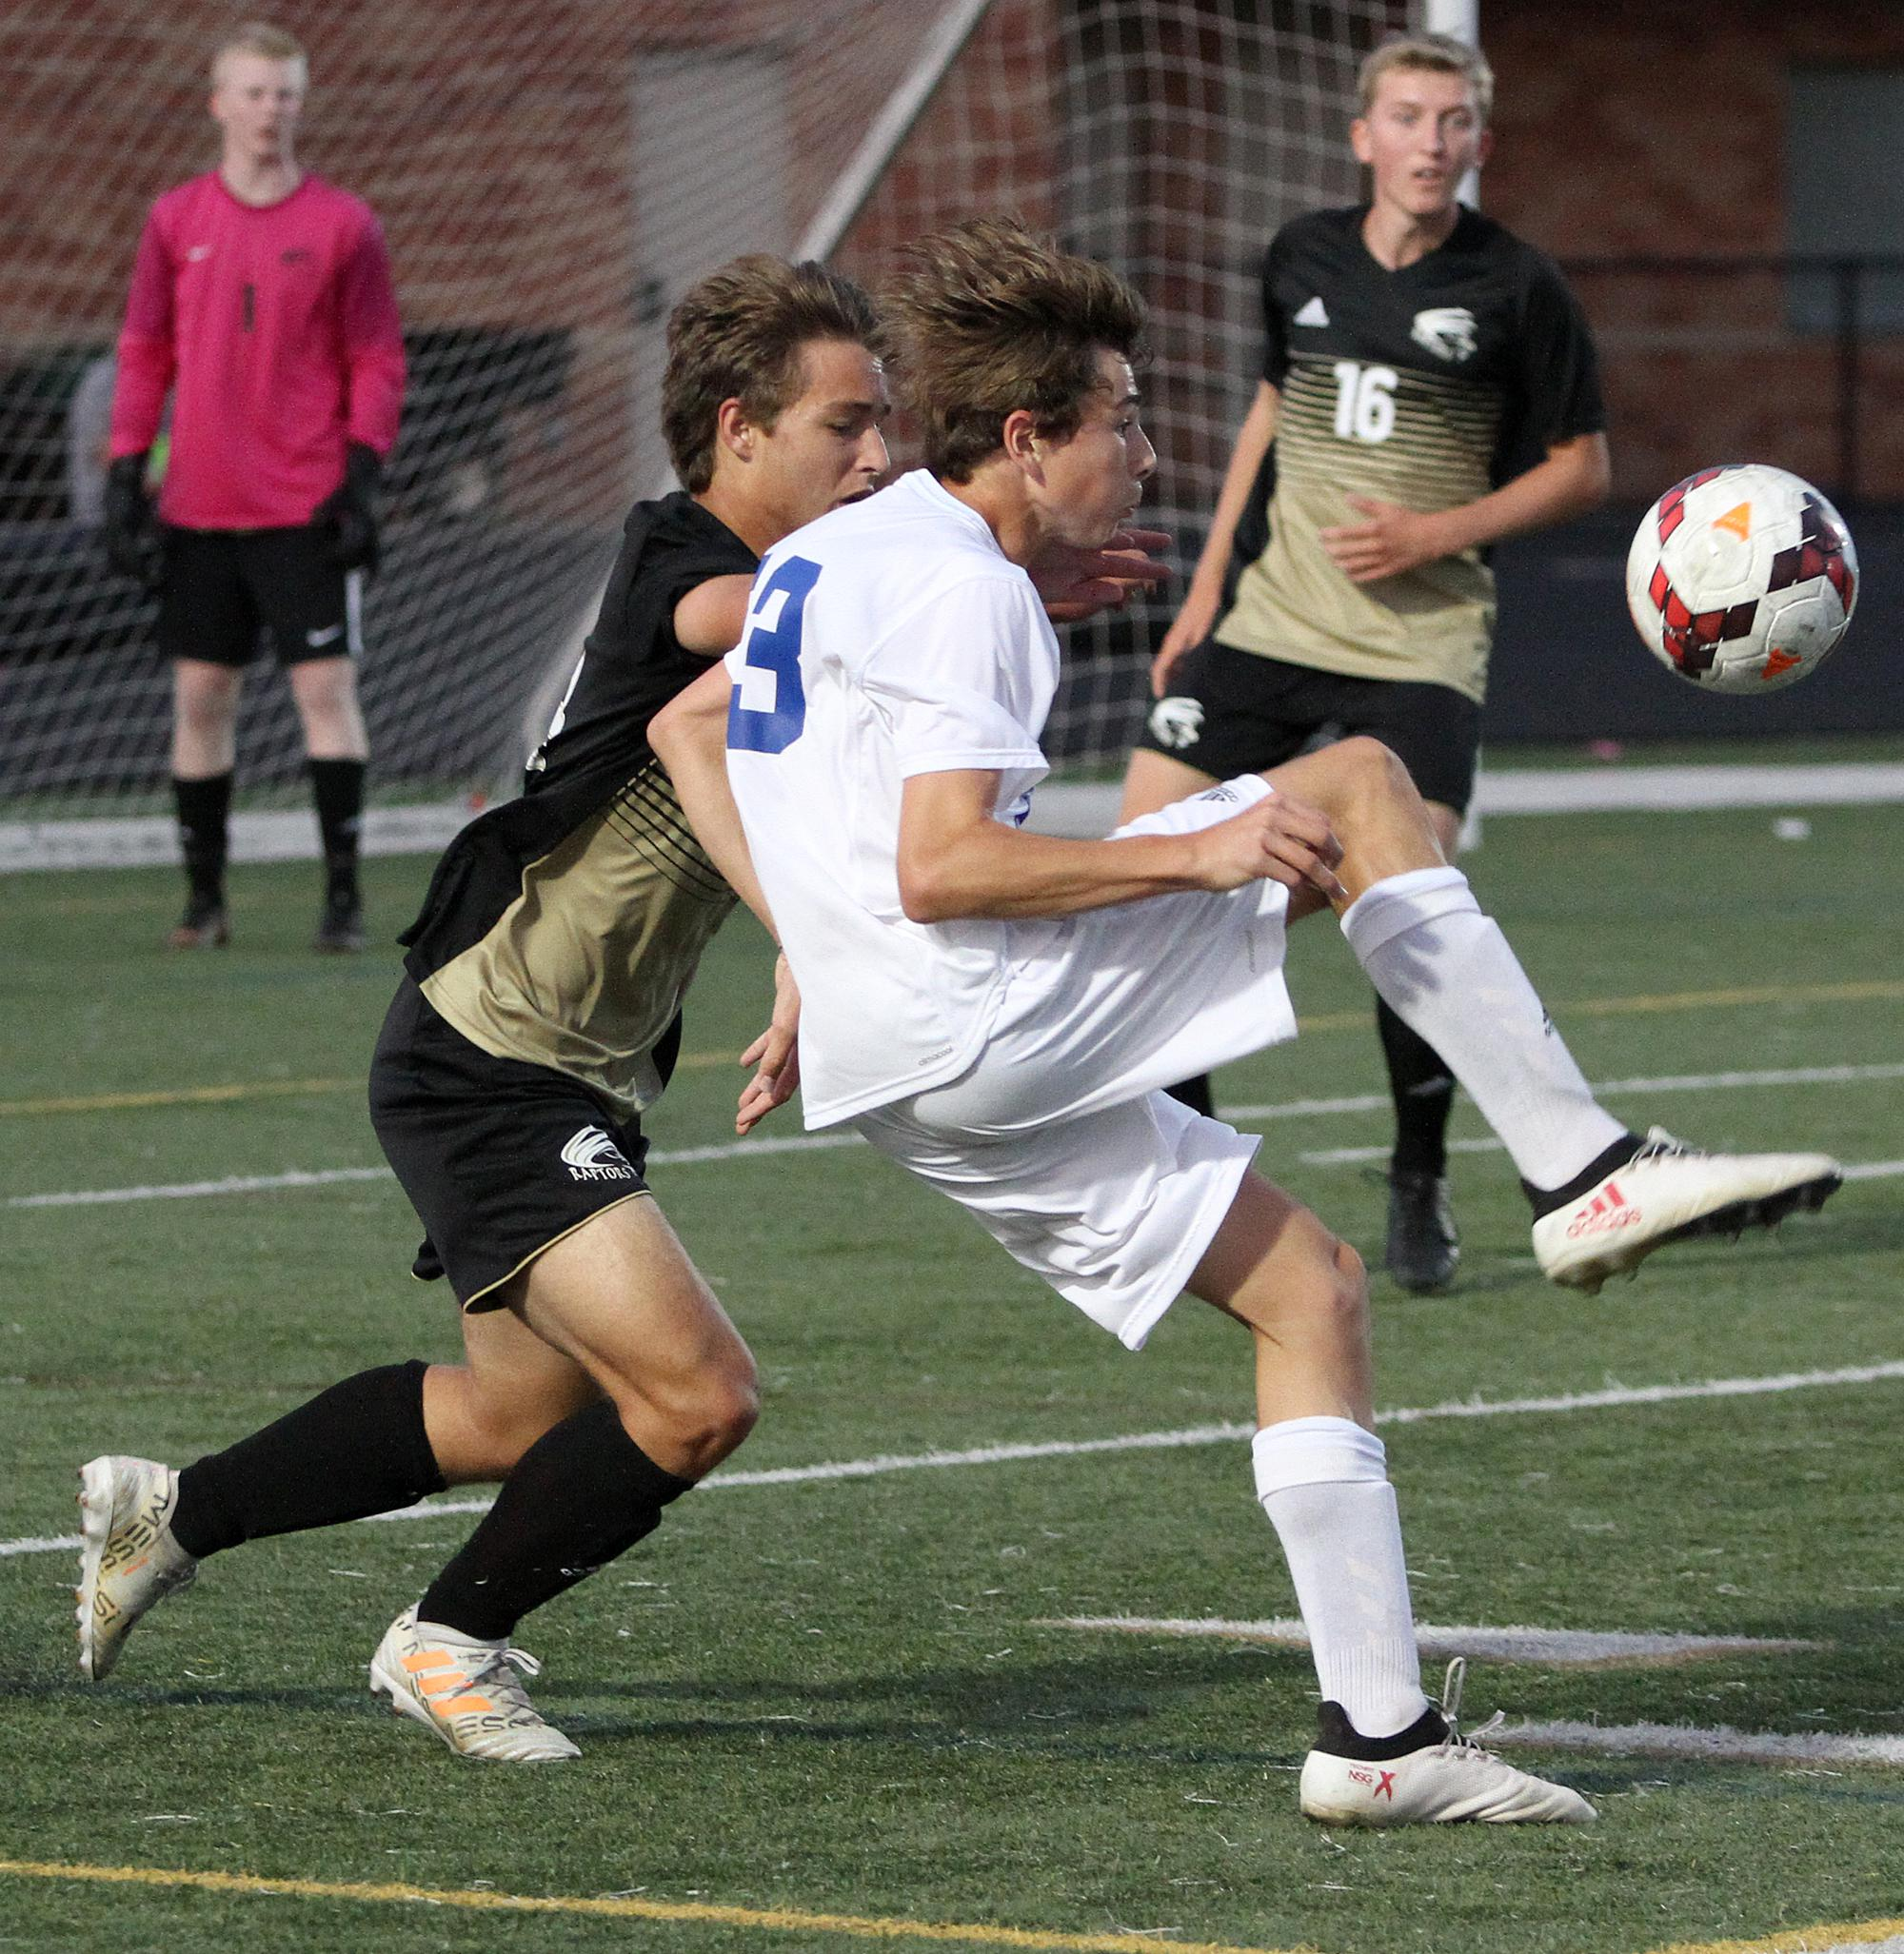 East Ridge junior defender Chris Duliere marks Woodbury sophomore attacker Devin Padelford late in the first half Tuesday night at East Ridge High School. The host Raptors beat Woodbury 2-1. Photo by Drew Herron, SportsEngine